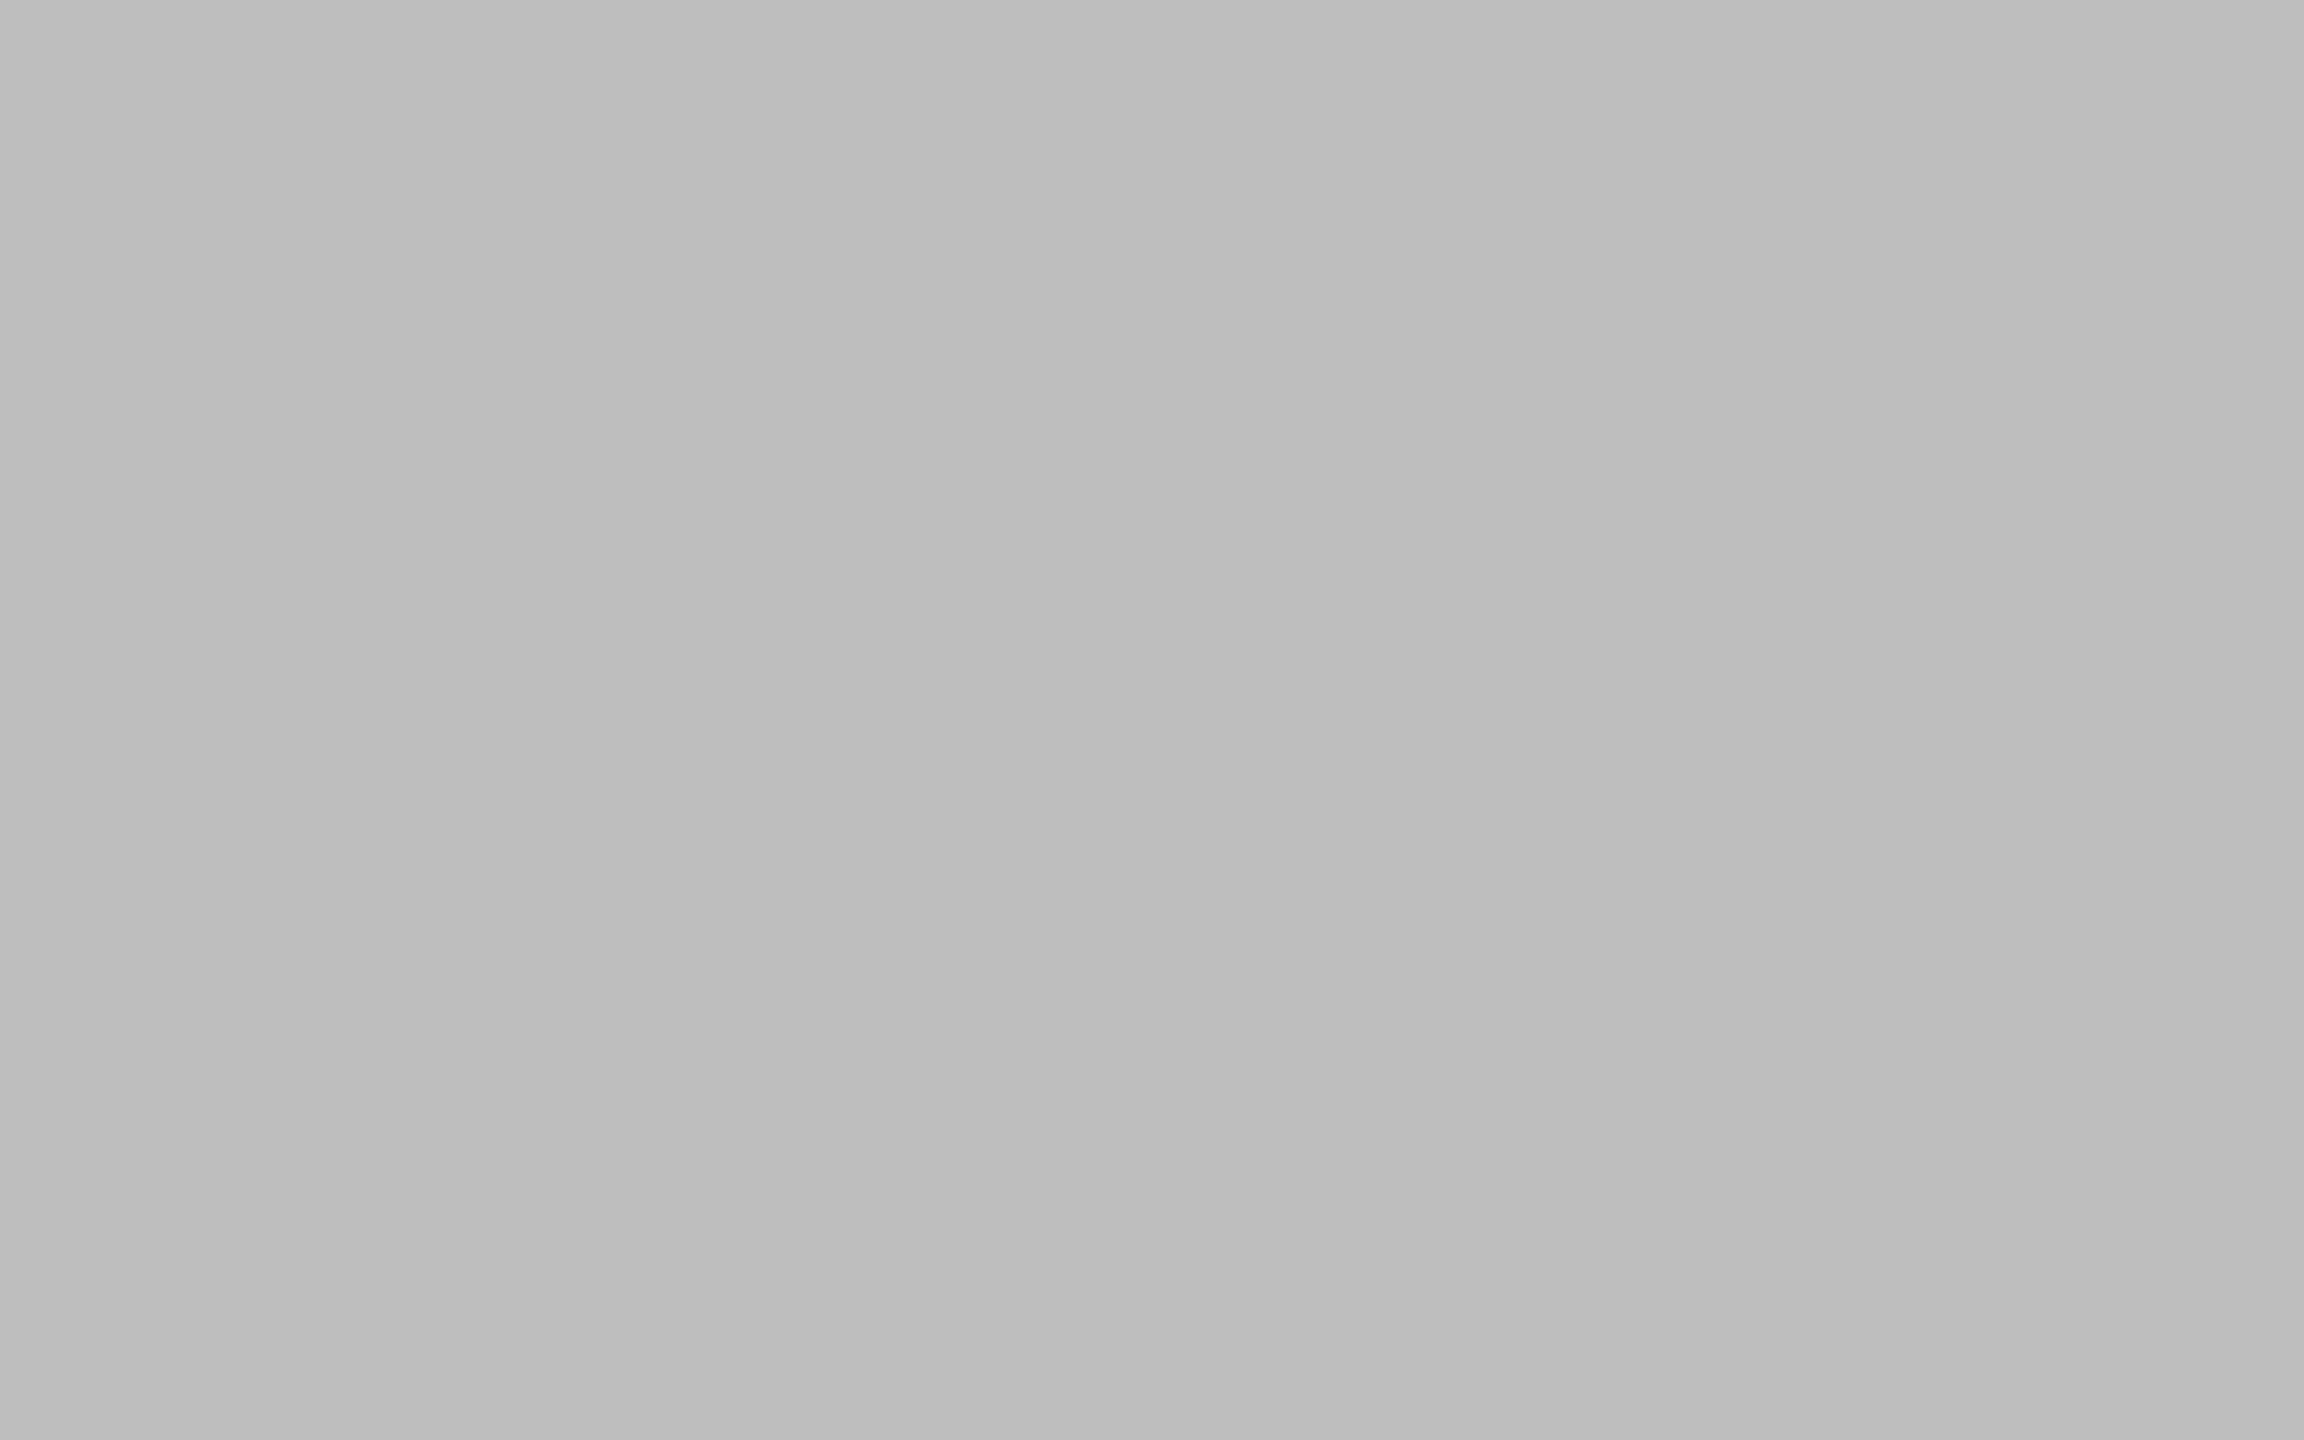 2304x1440 Gray X11 Gui Gray Solid Color Background